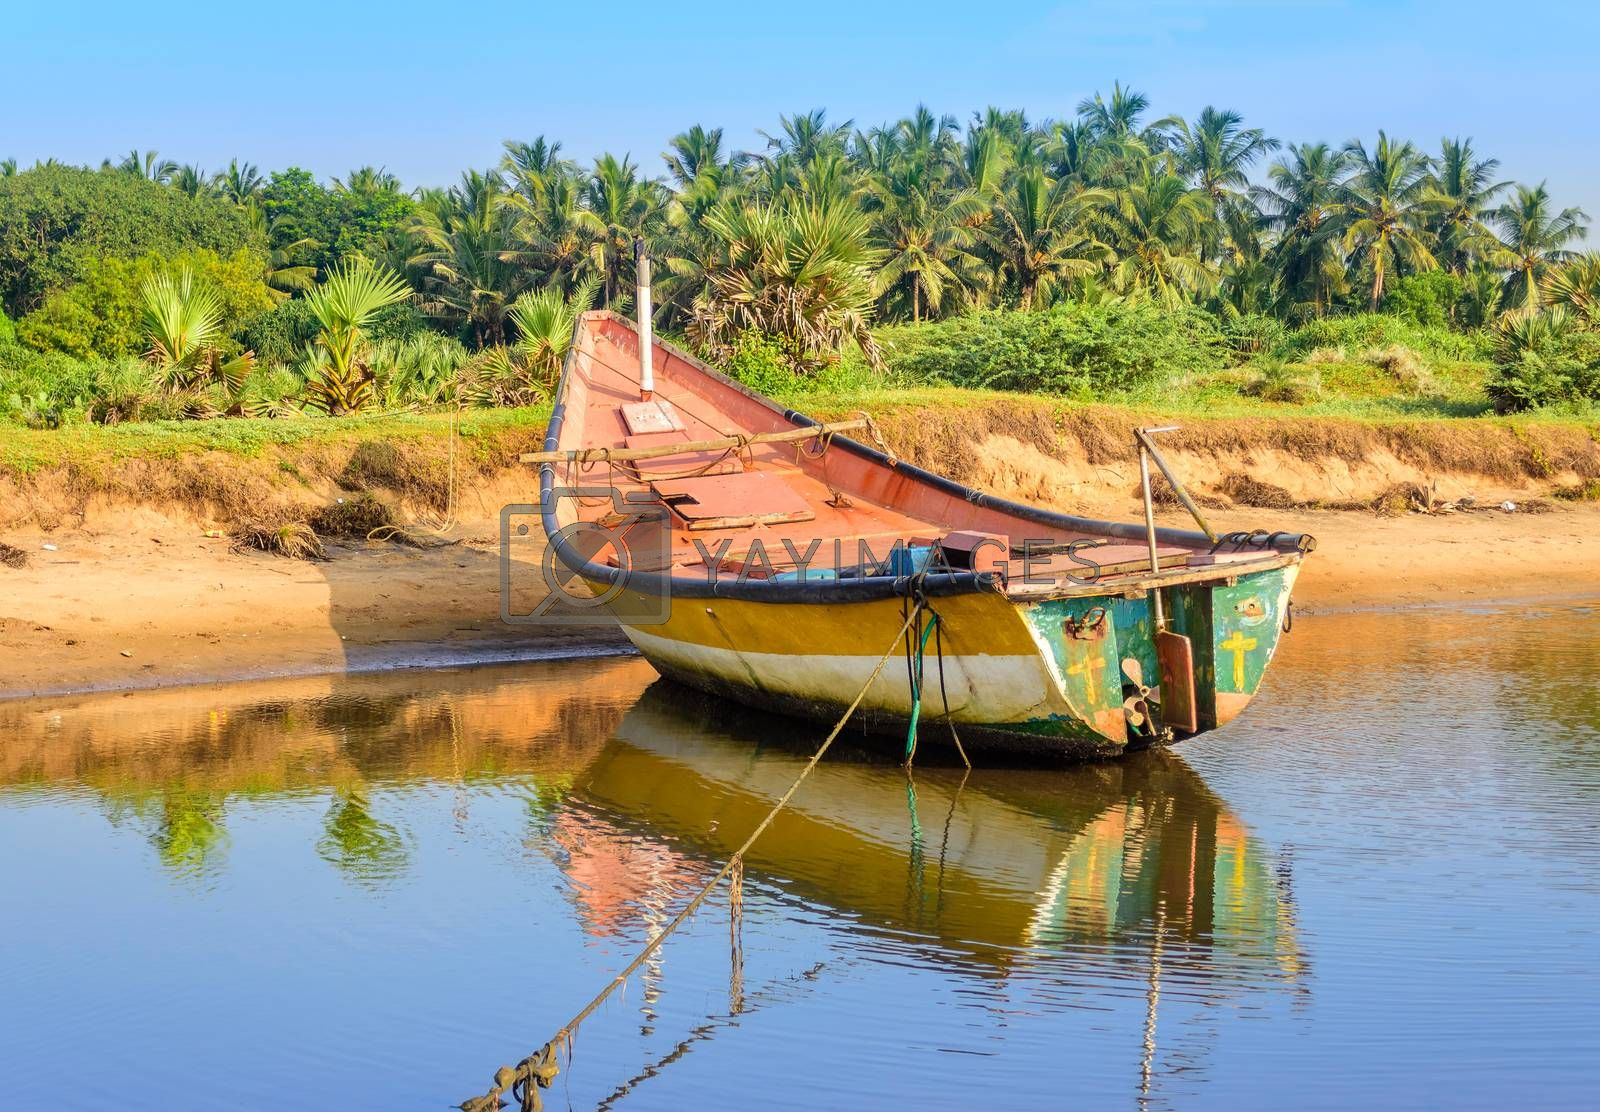 Local colorful fishing boat anchored in the shallow water, copy space